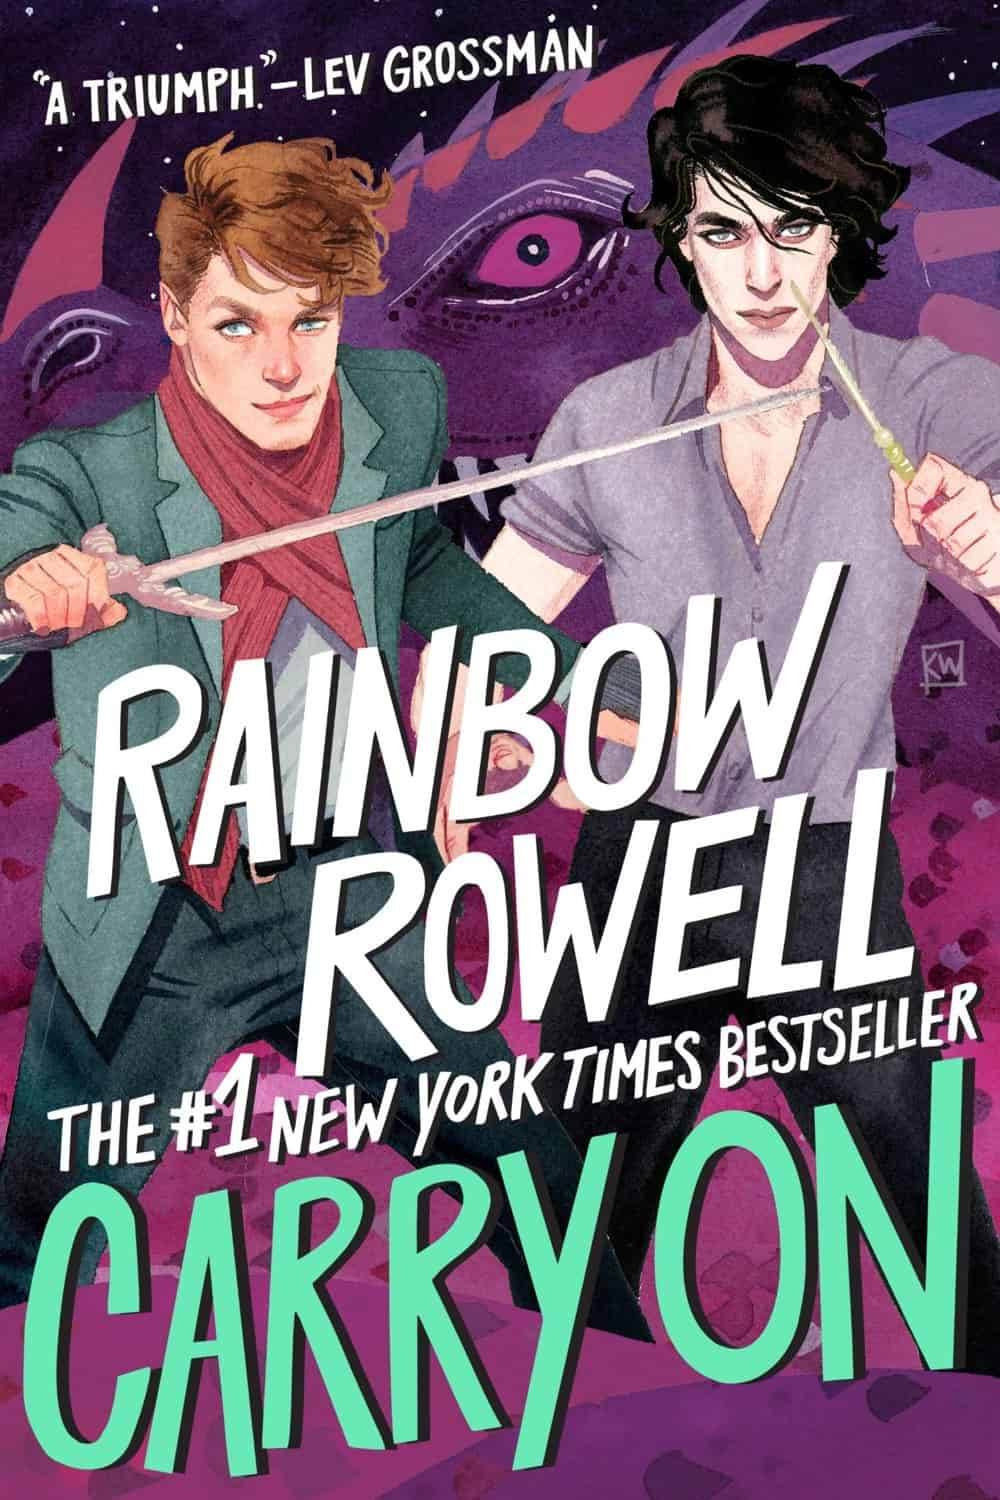 carry on rainbow rowell kevin wada art